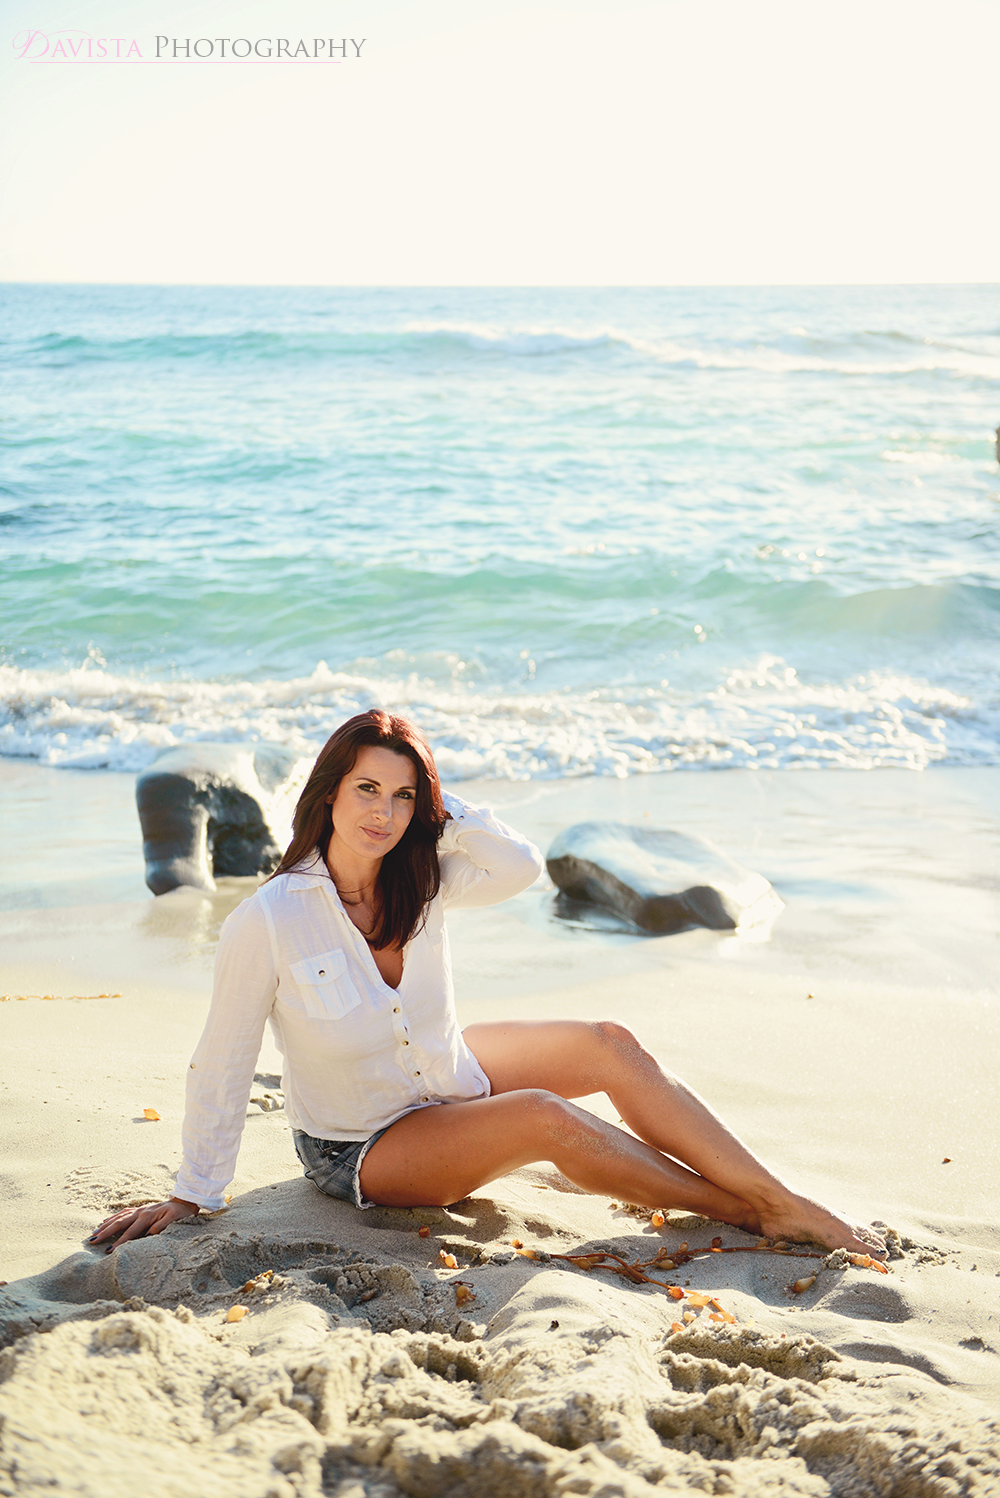 modeling-on-the-beach-sand-poses-photography